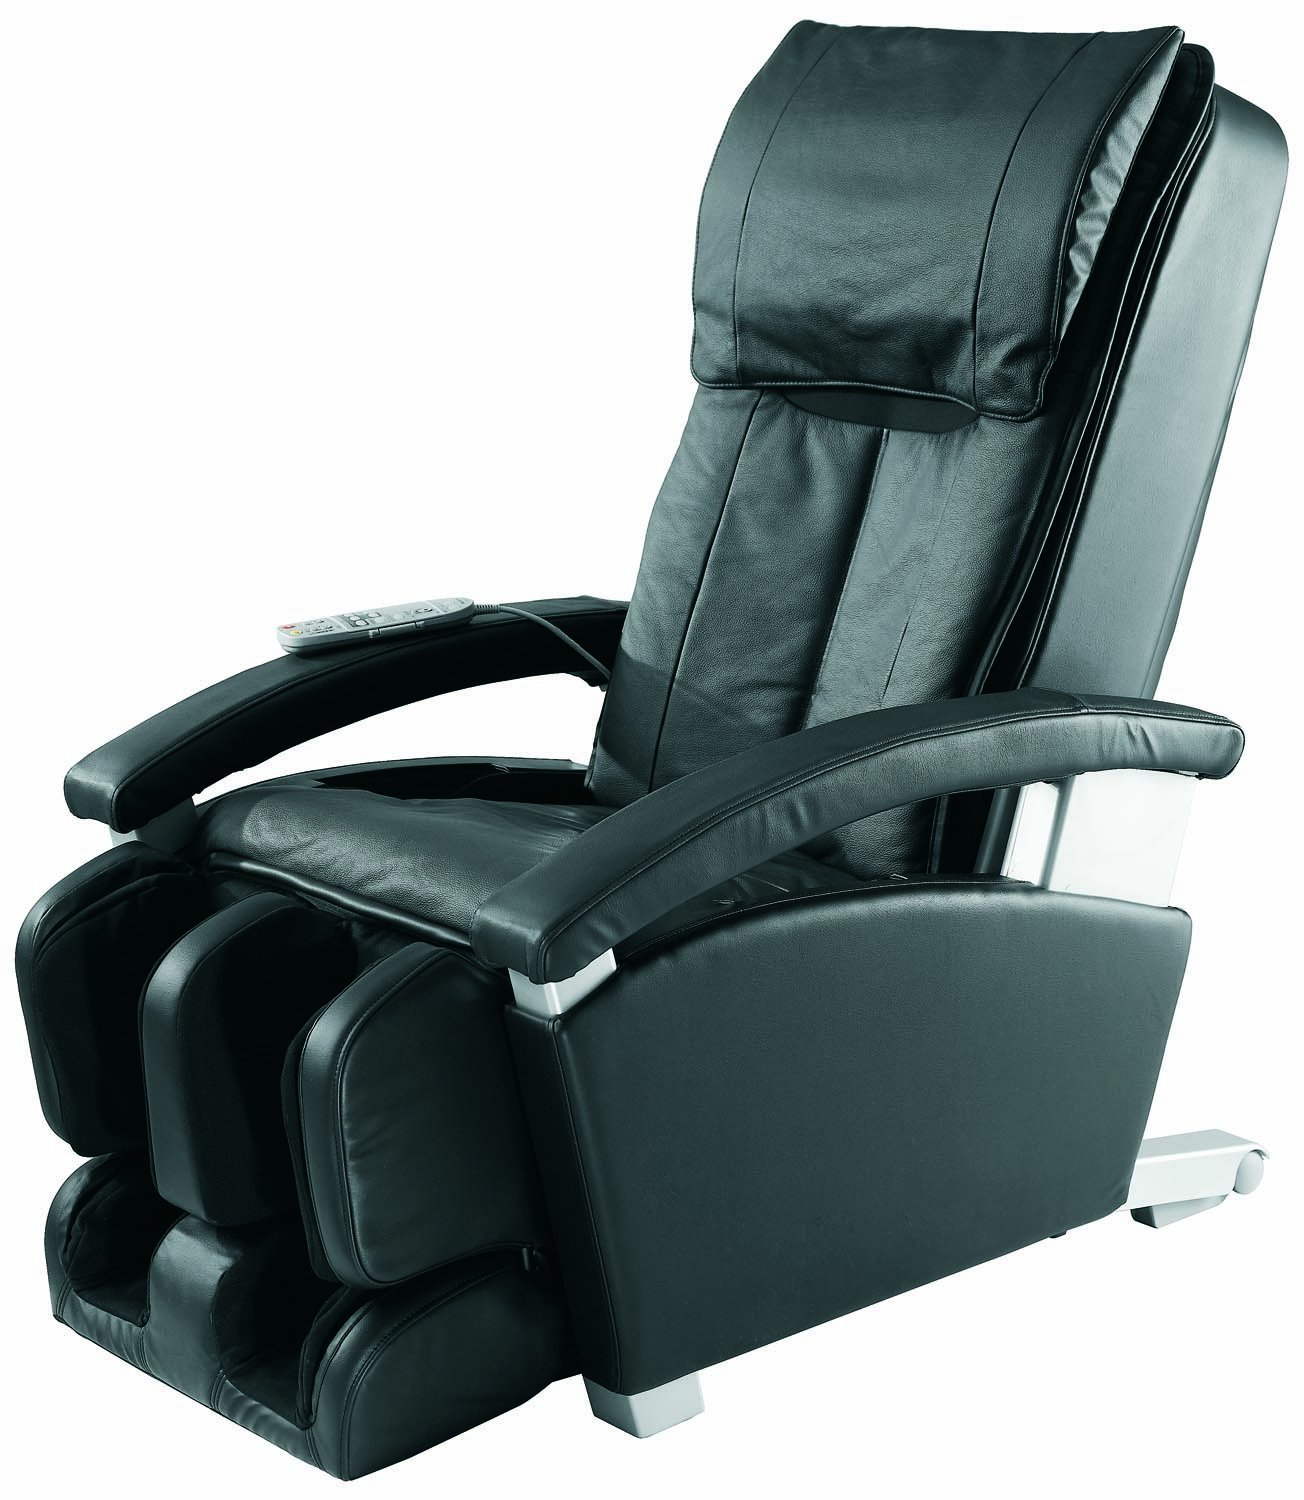 Balance Cushion For Chair Panasonic Massage Chair EP1285KL Review - Massage Chair HQ